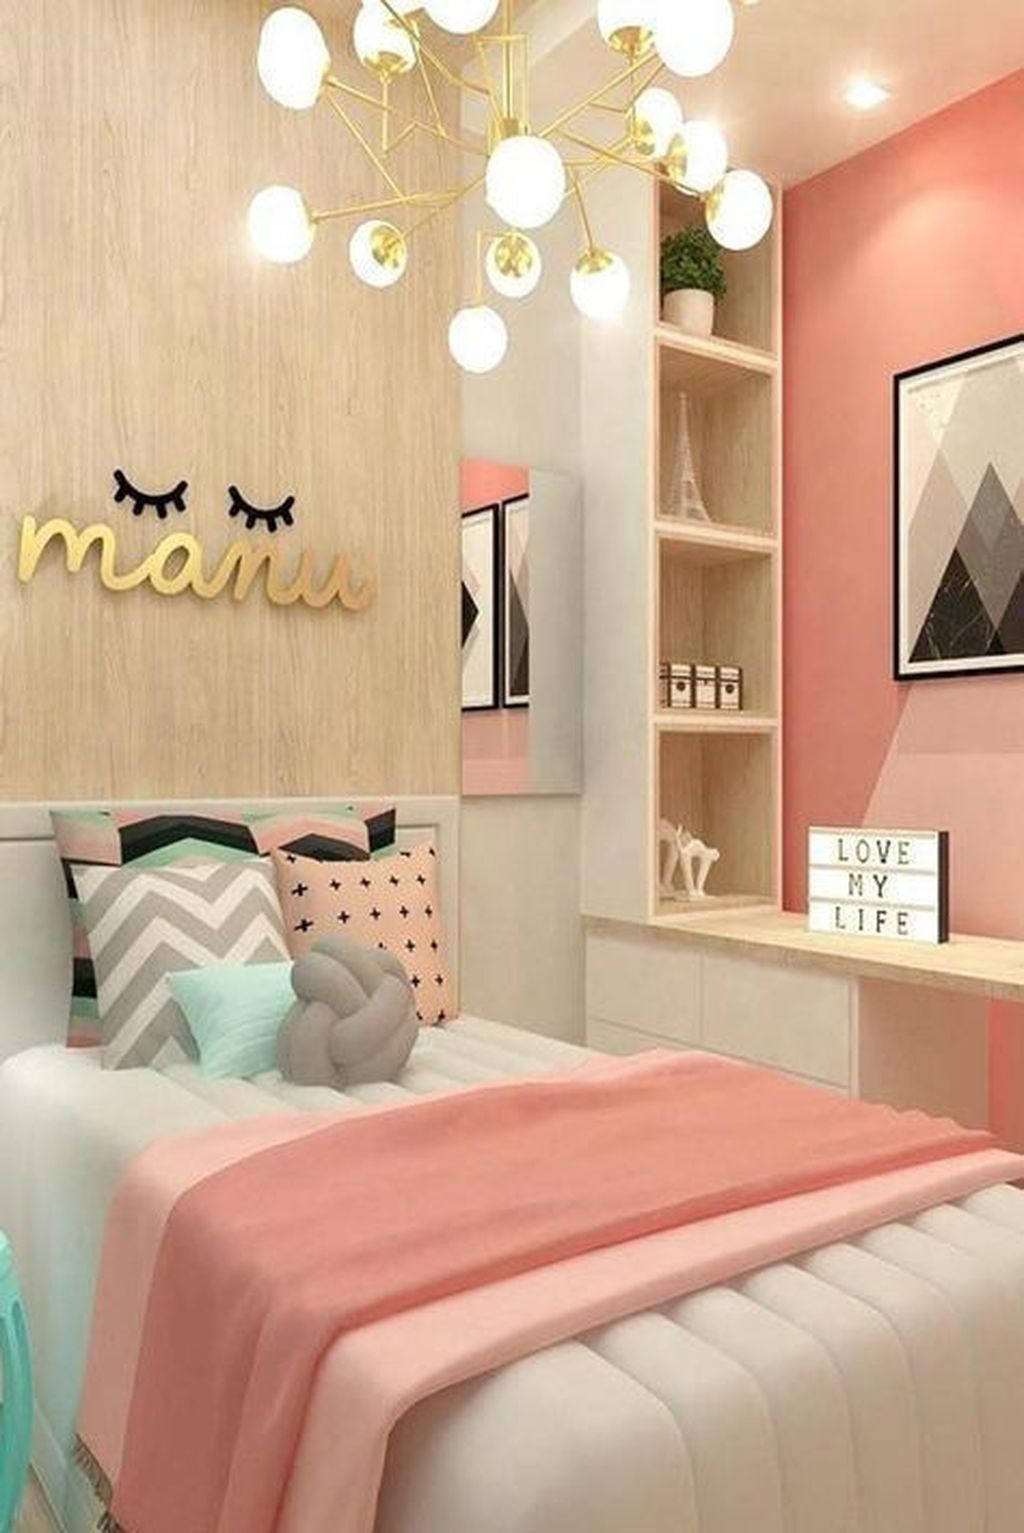 40 Cute Bedroom Ideas For Small Rooms images